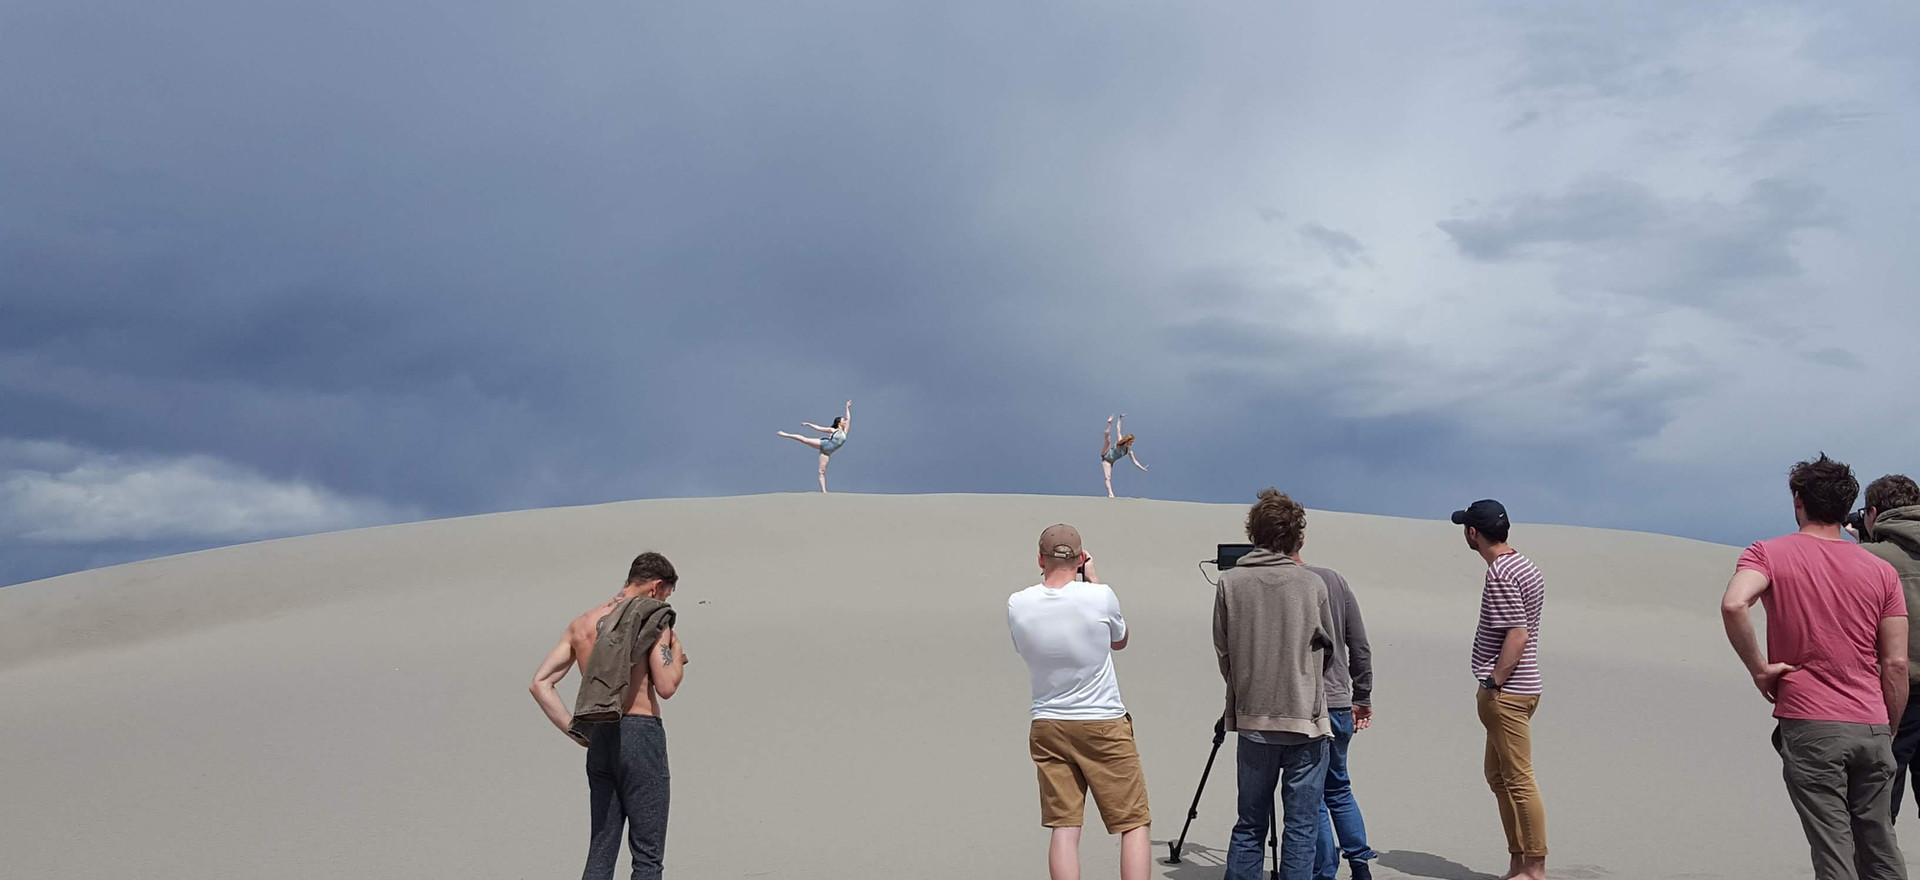 Filming at Bruneau Sand Dunes